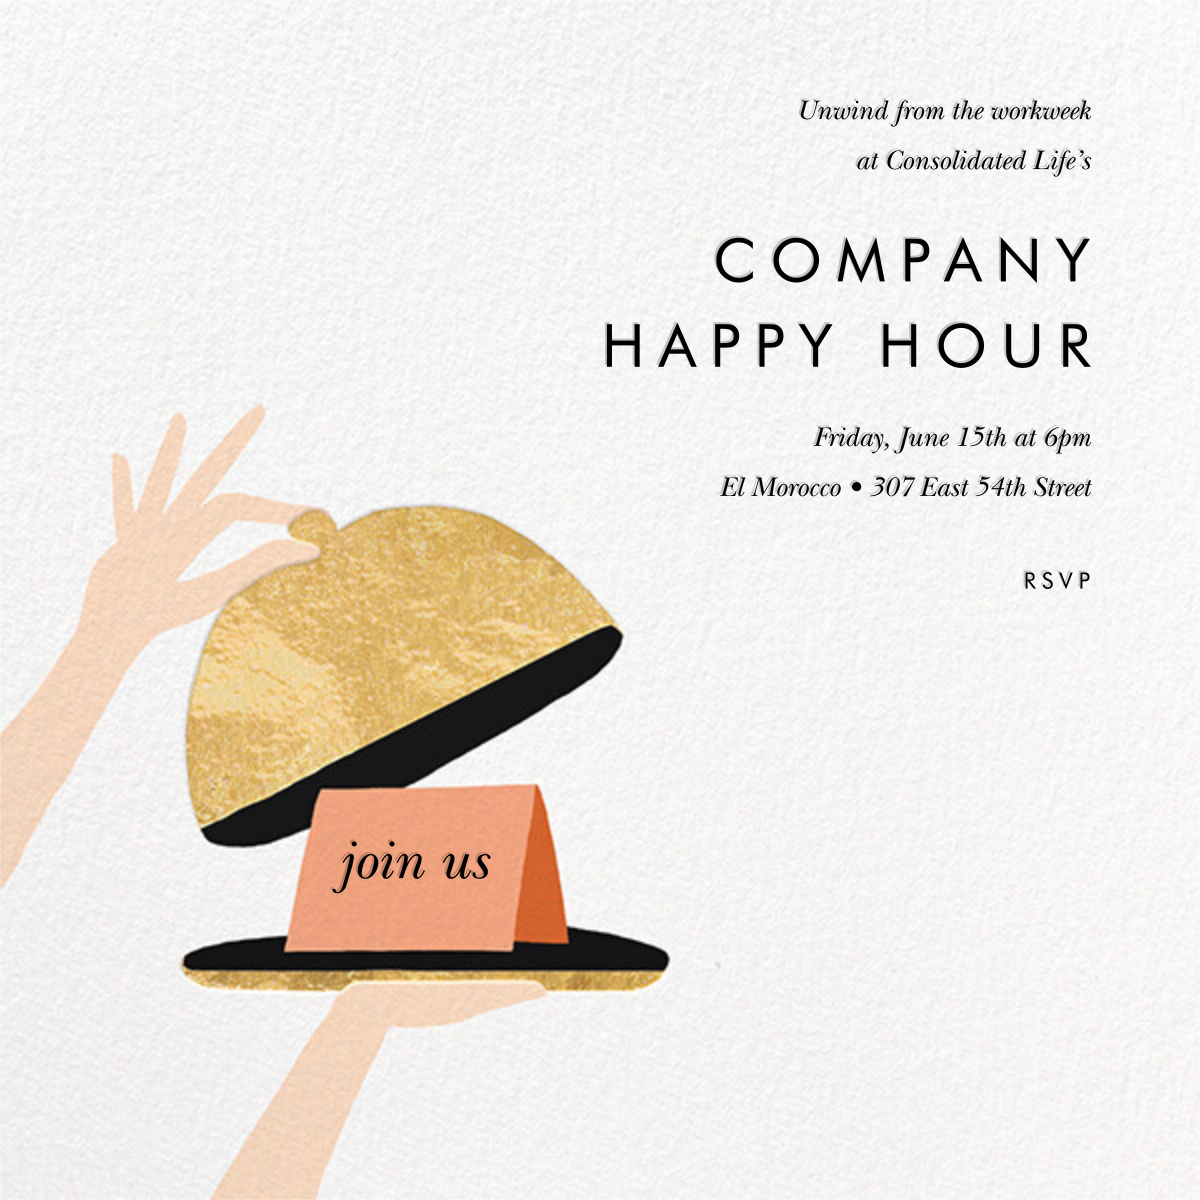 Cloche - Rifle Paper Co. - Happy hour